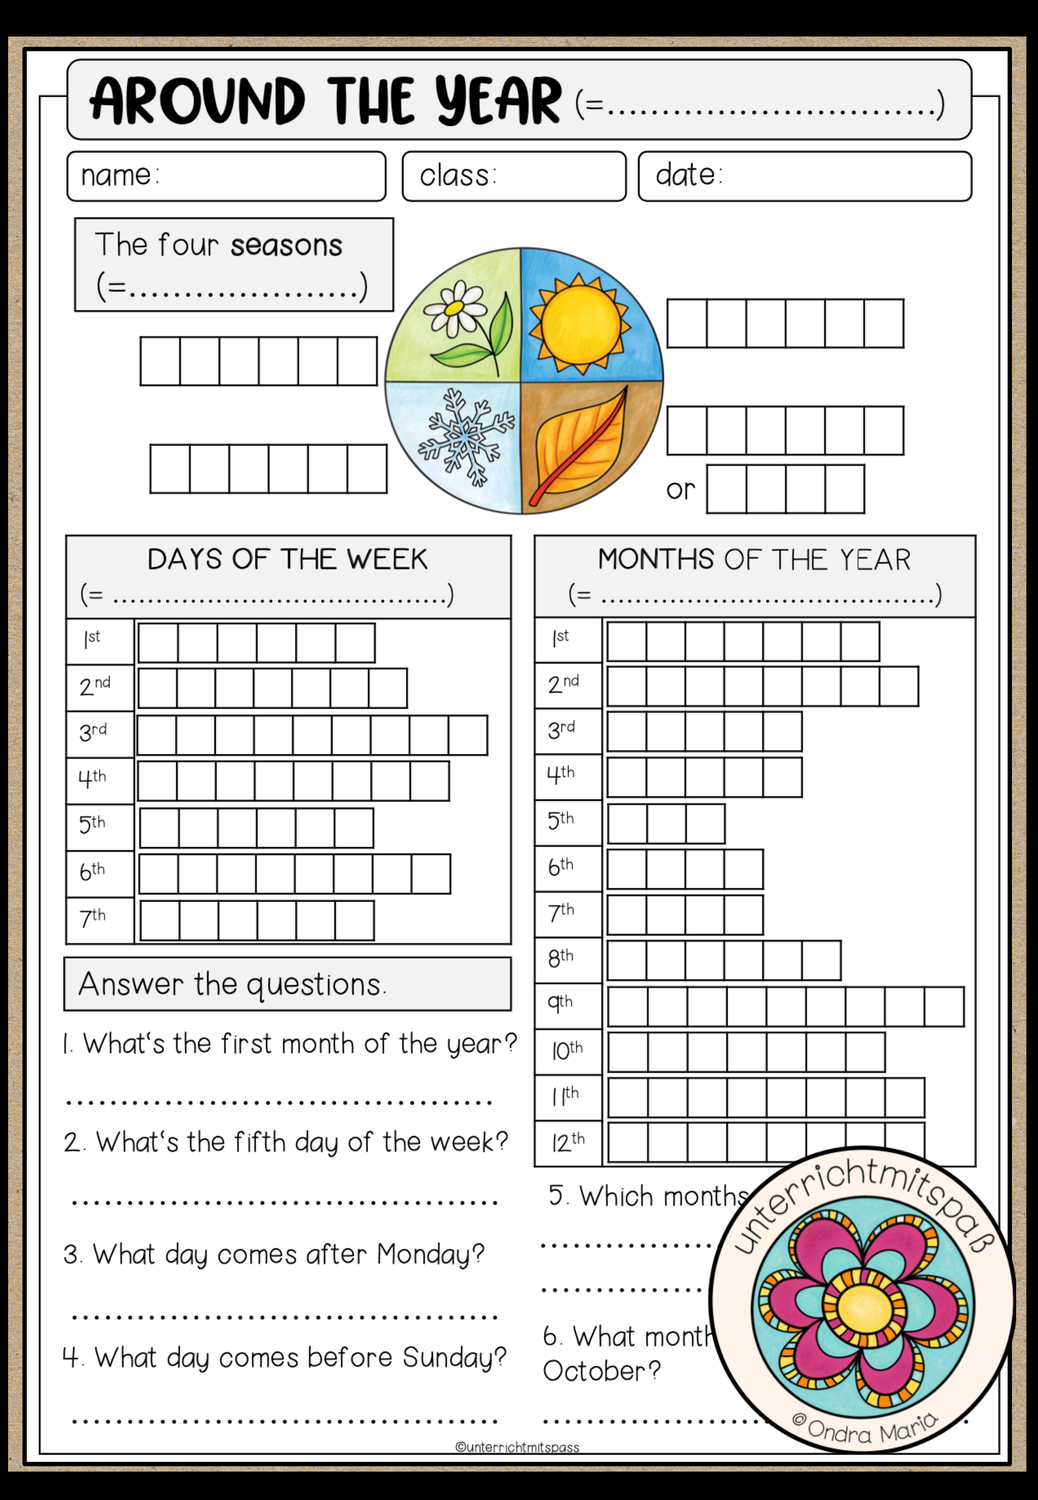 Around The Year Worksheet